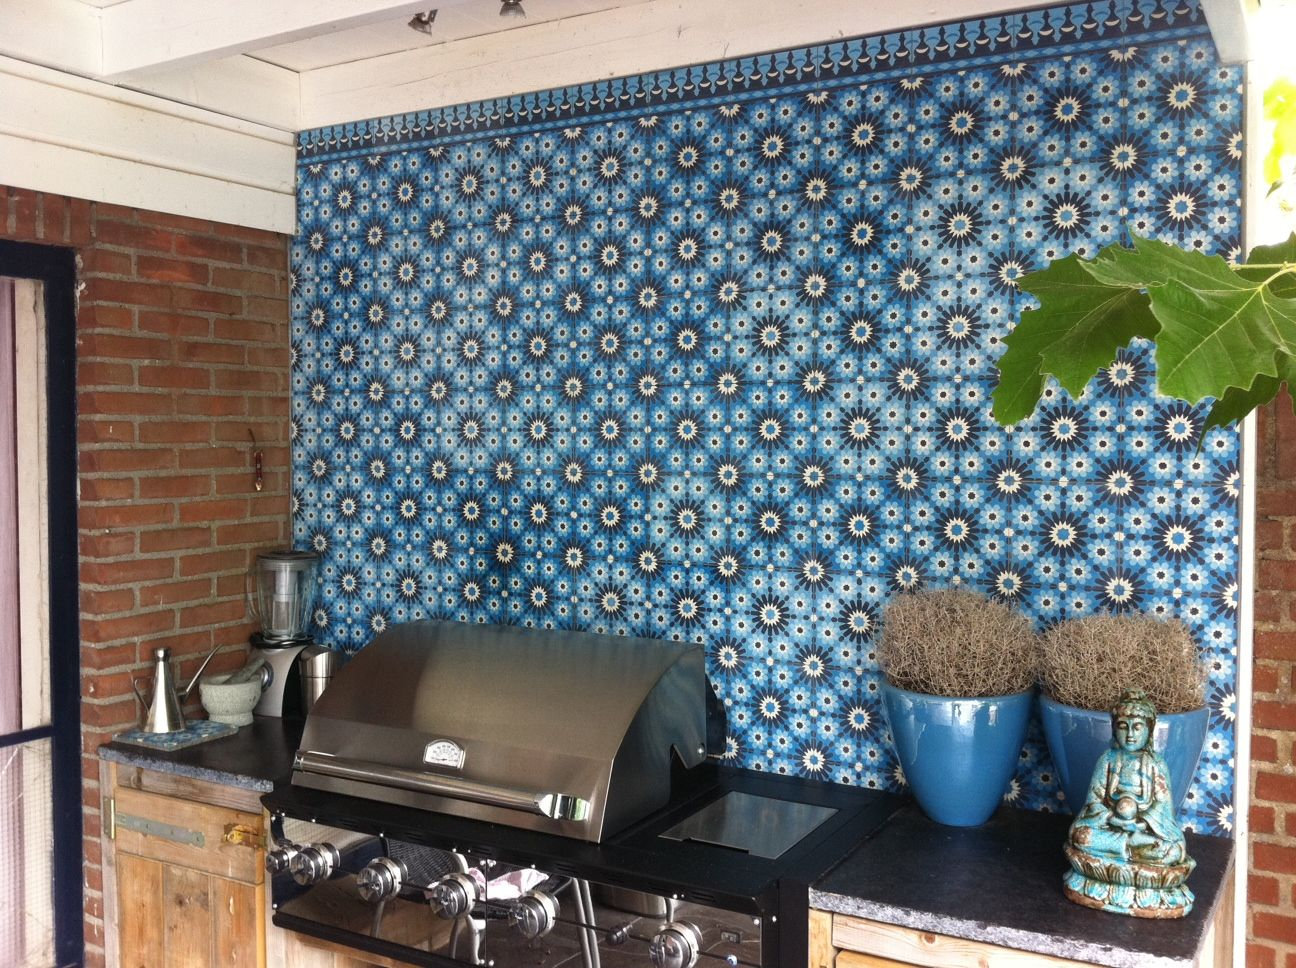 Outdoor kitchen with cement tiles (Azule 13) on the wall. Morocco ...